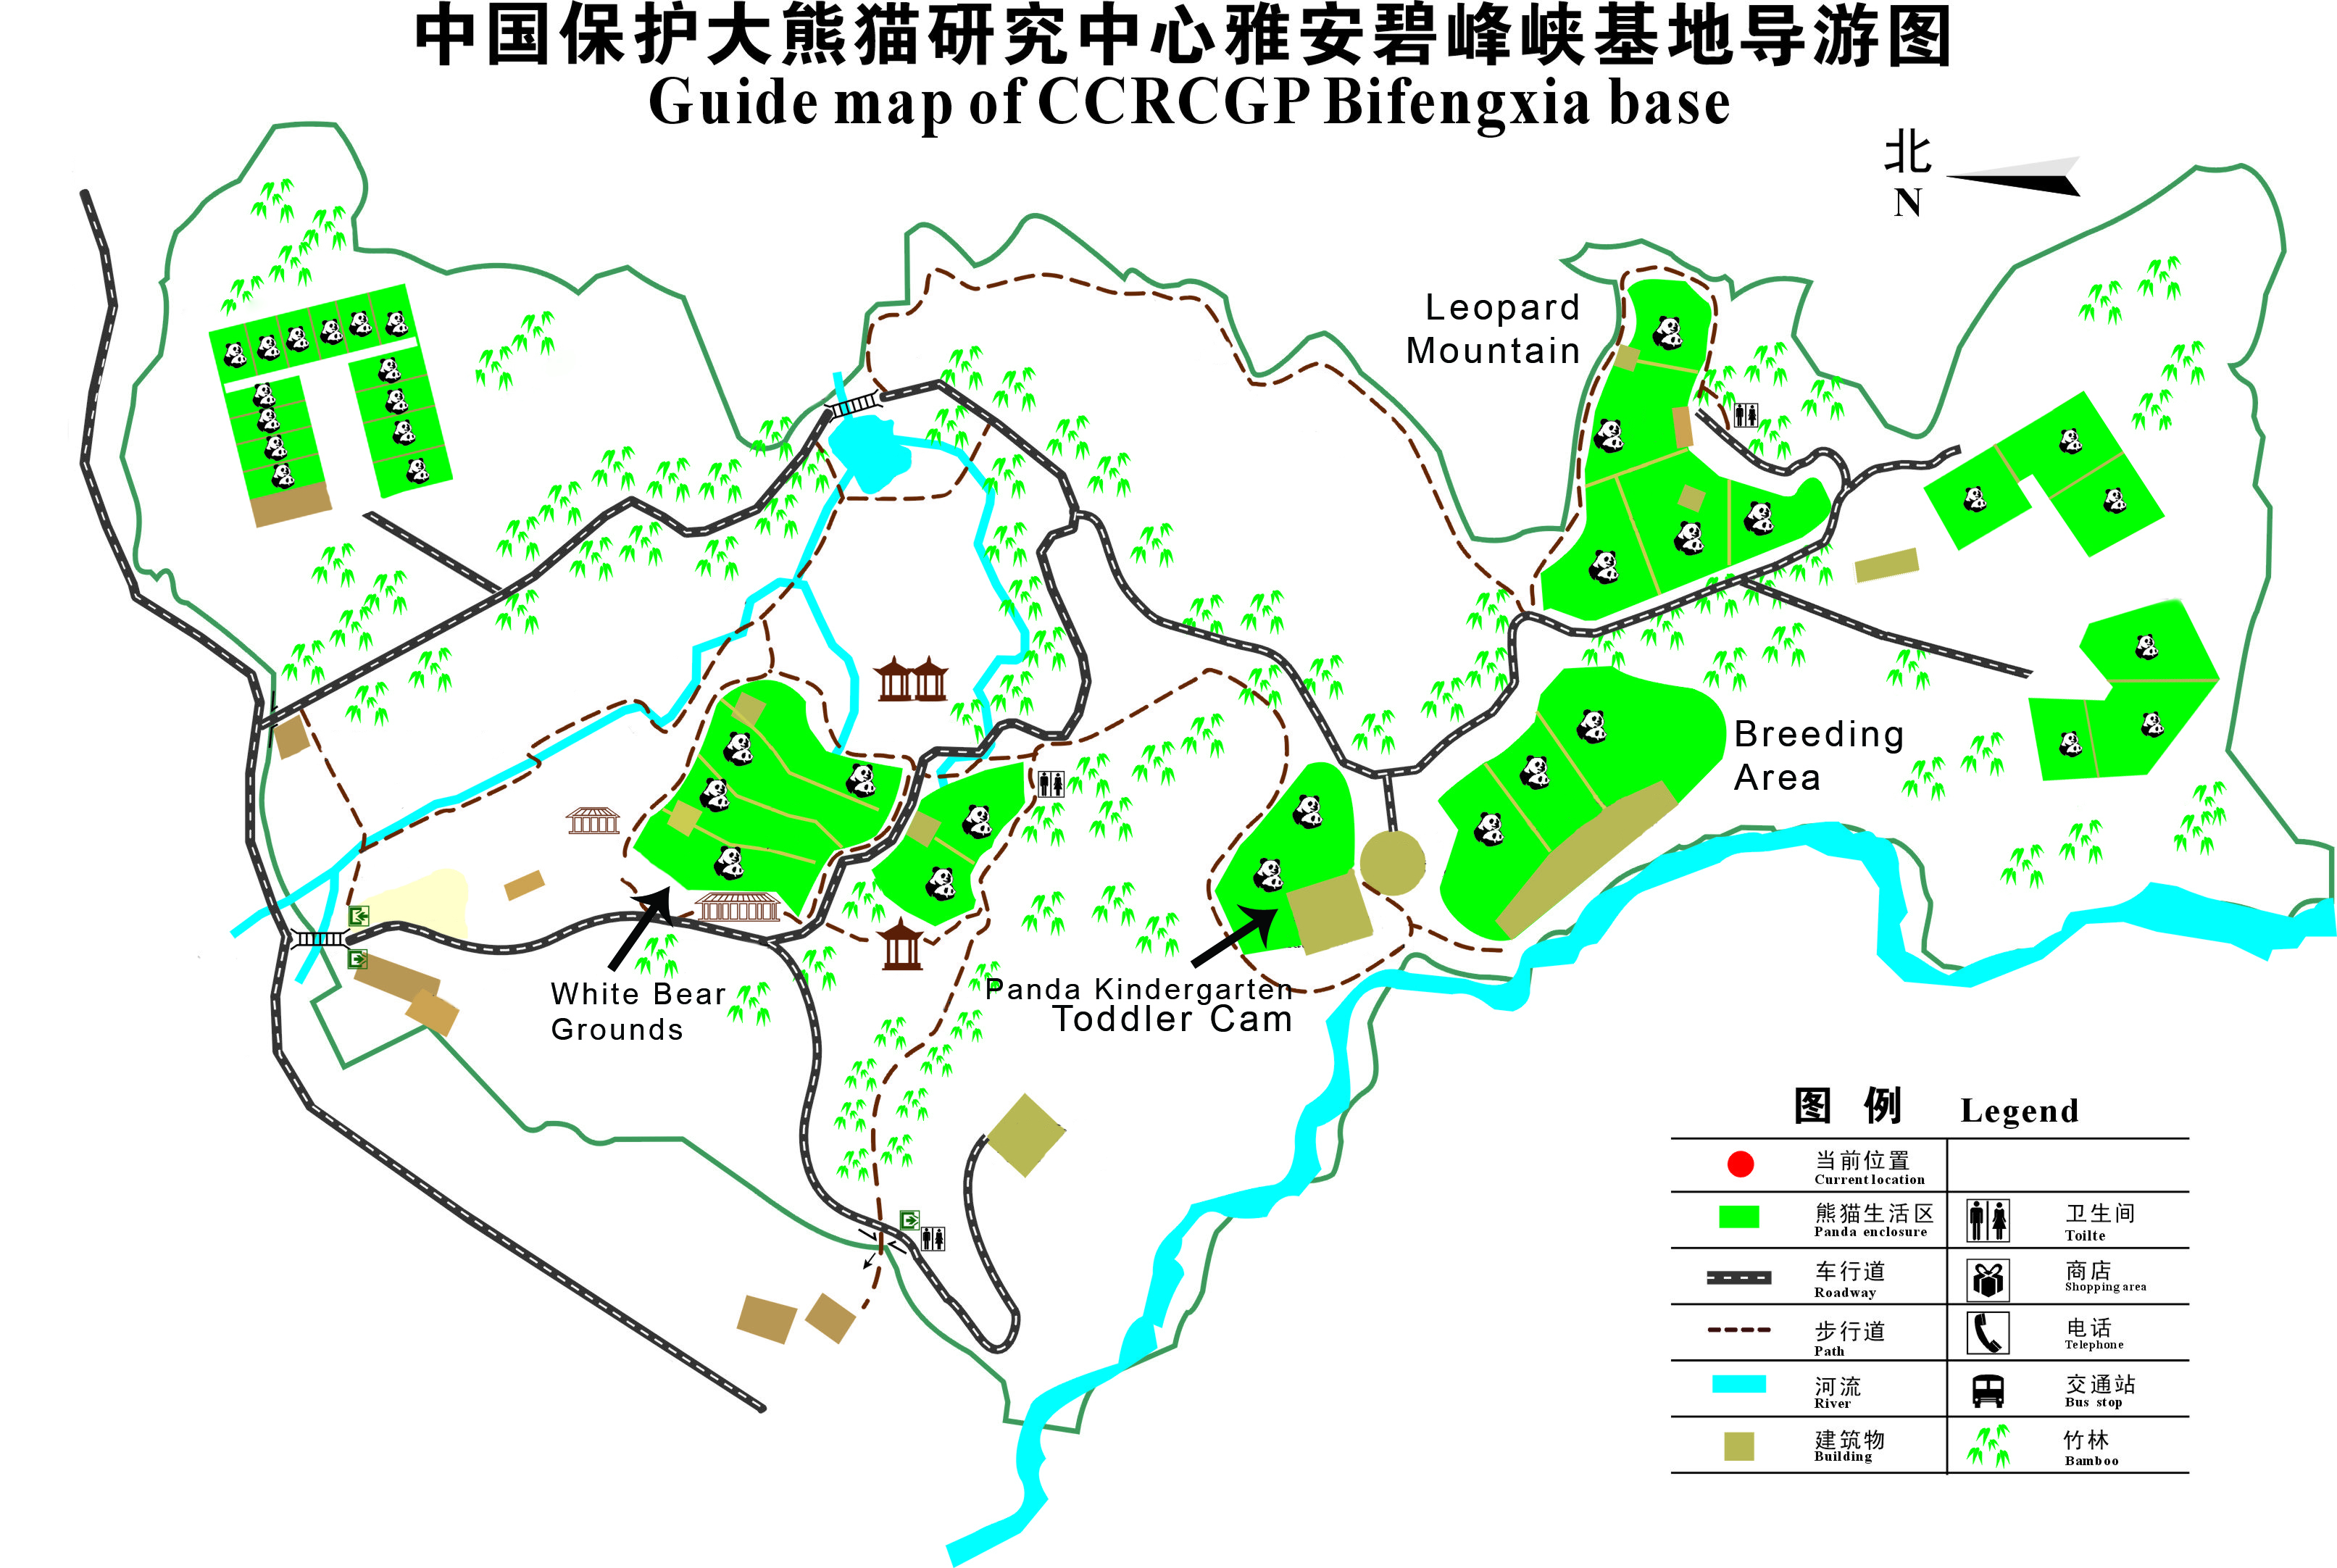 Bifengxia Map